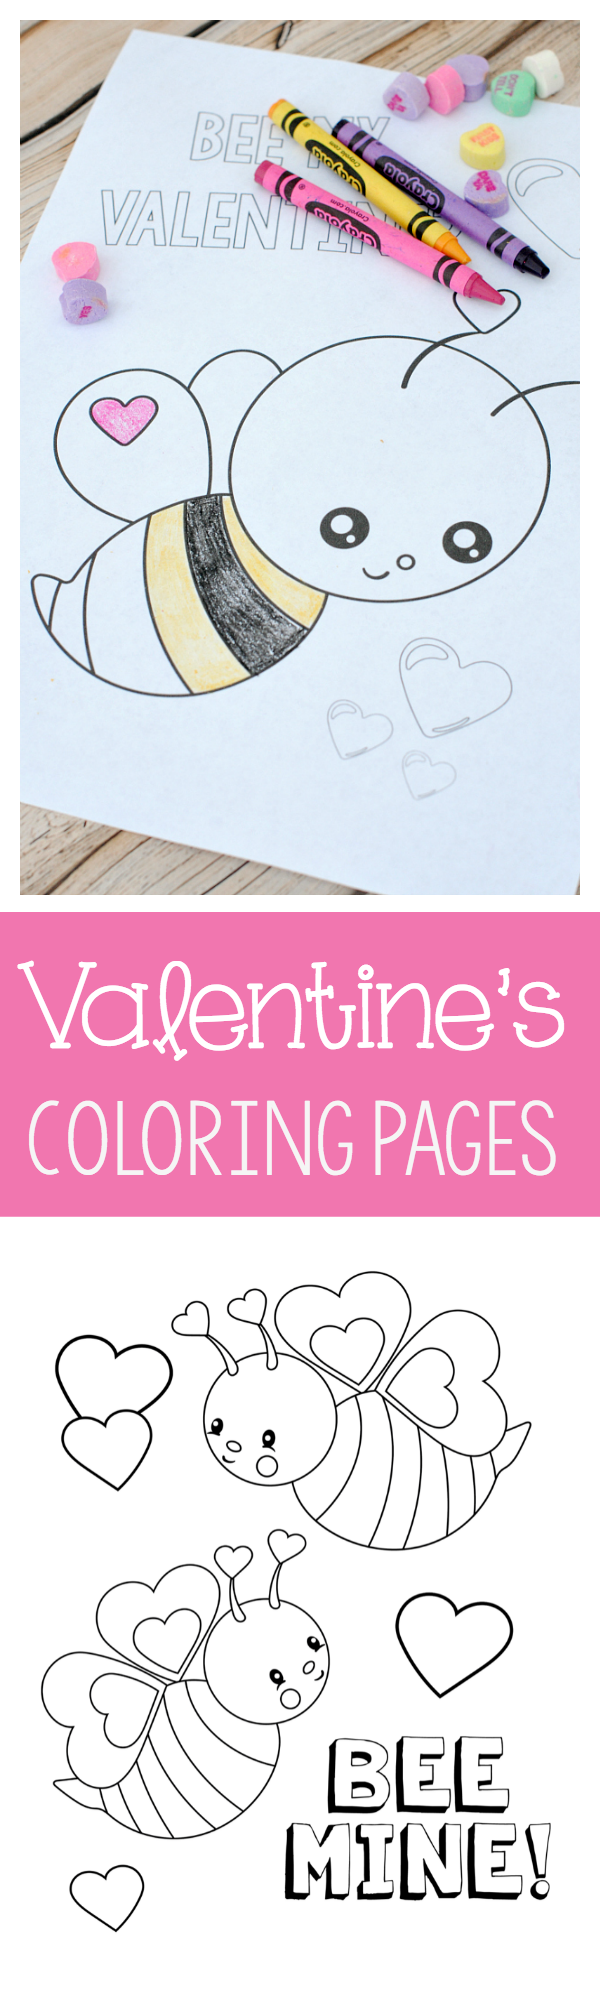 Free Printable Valentine's Coloring Pages